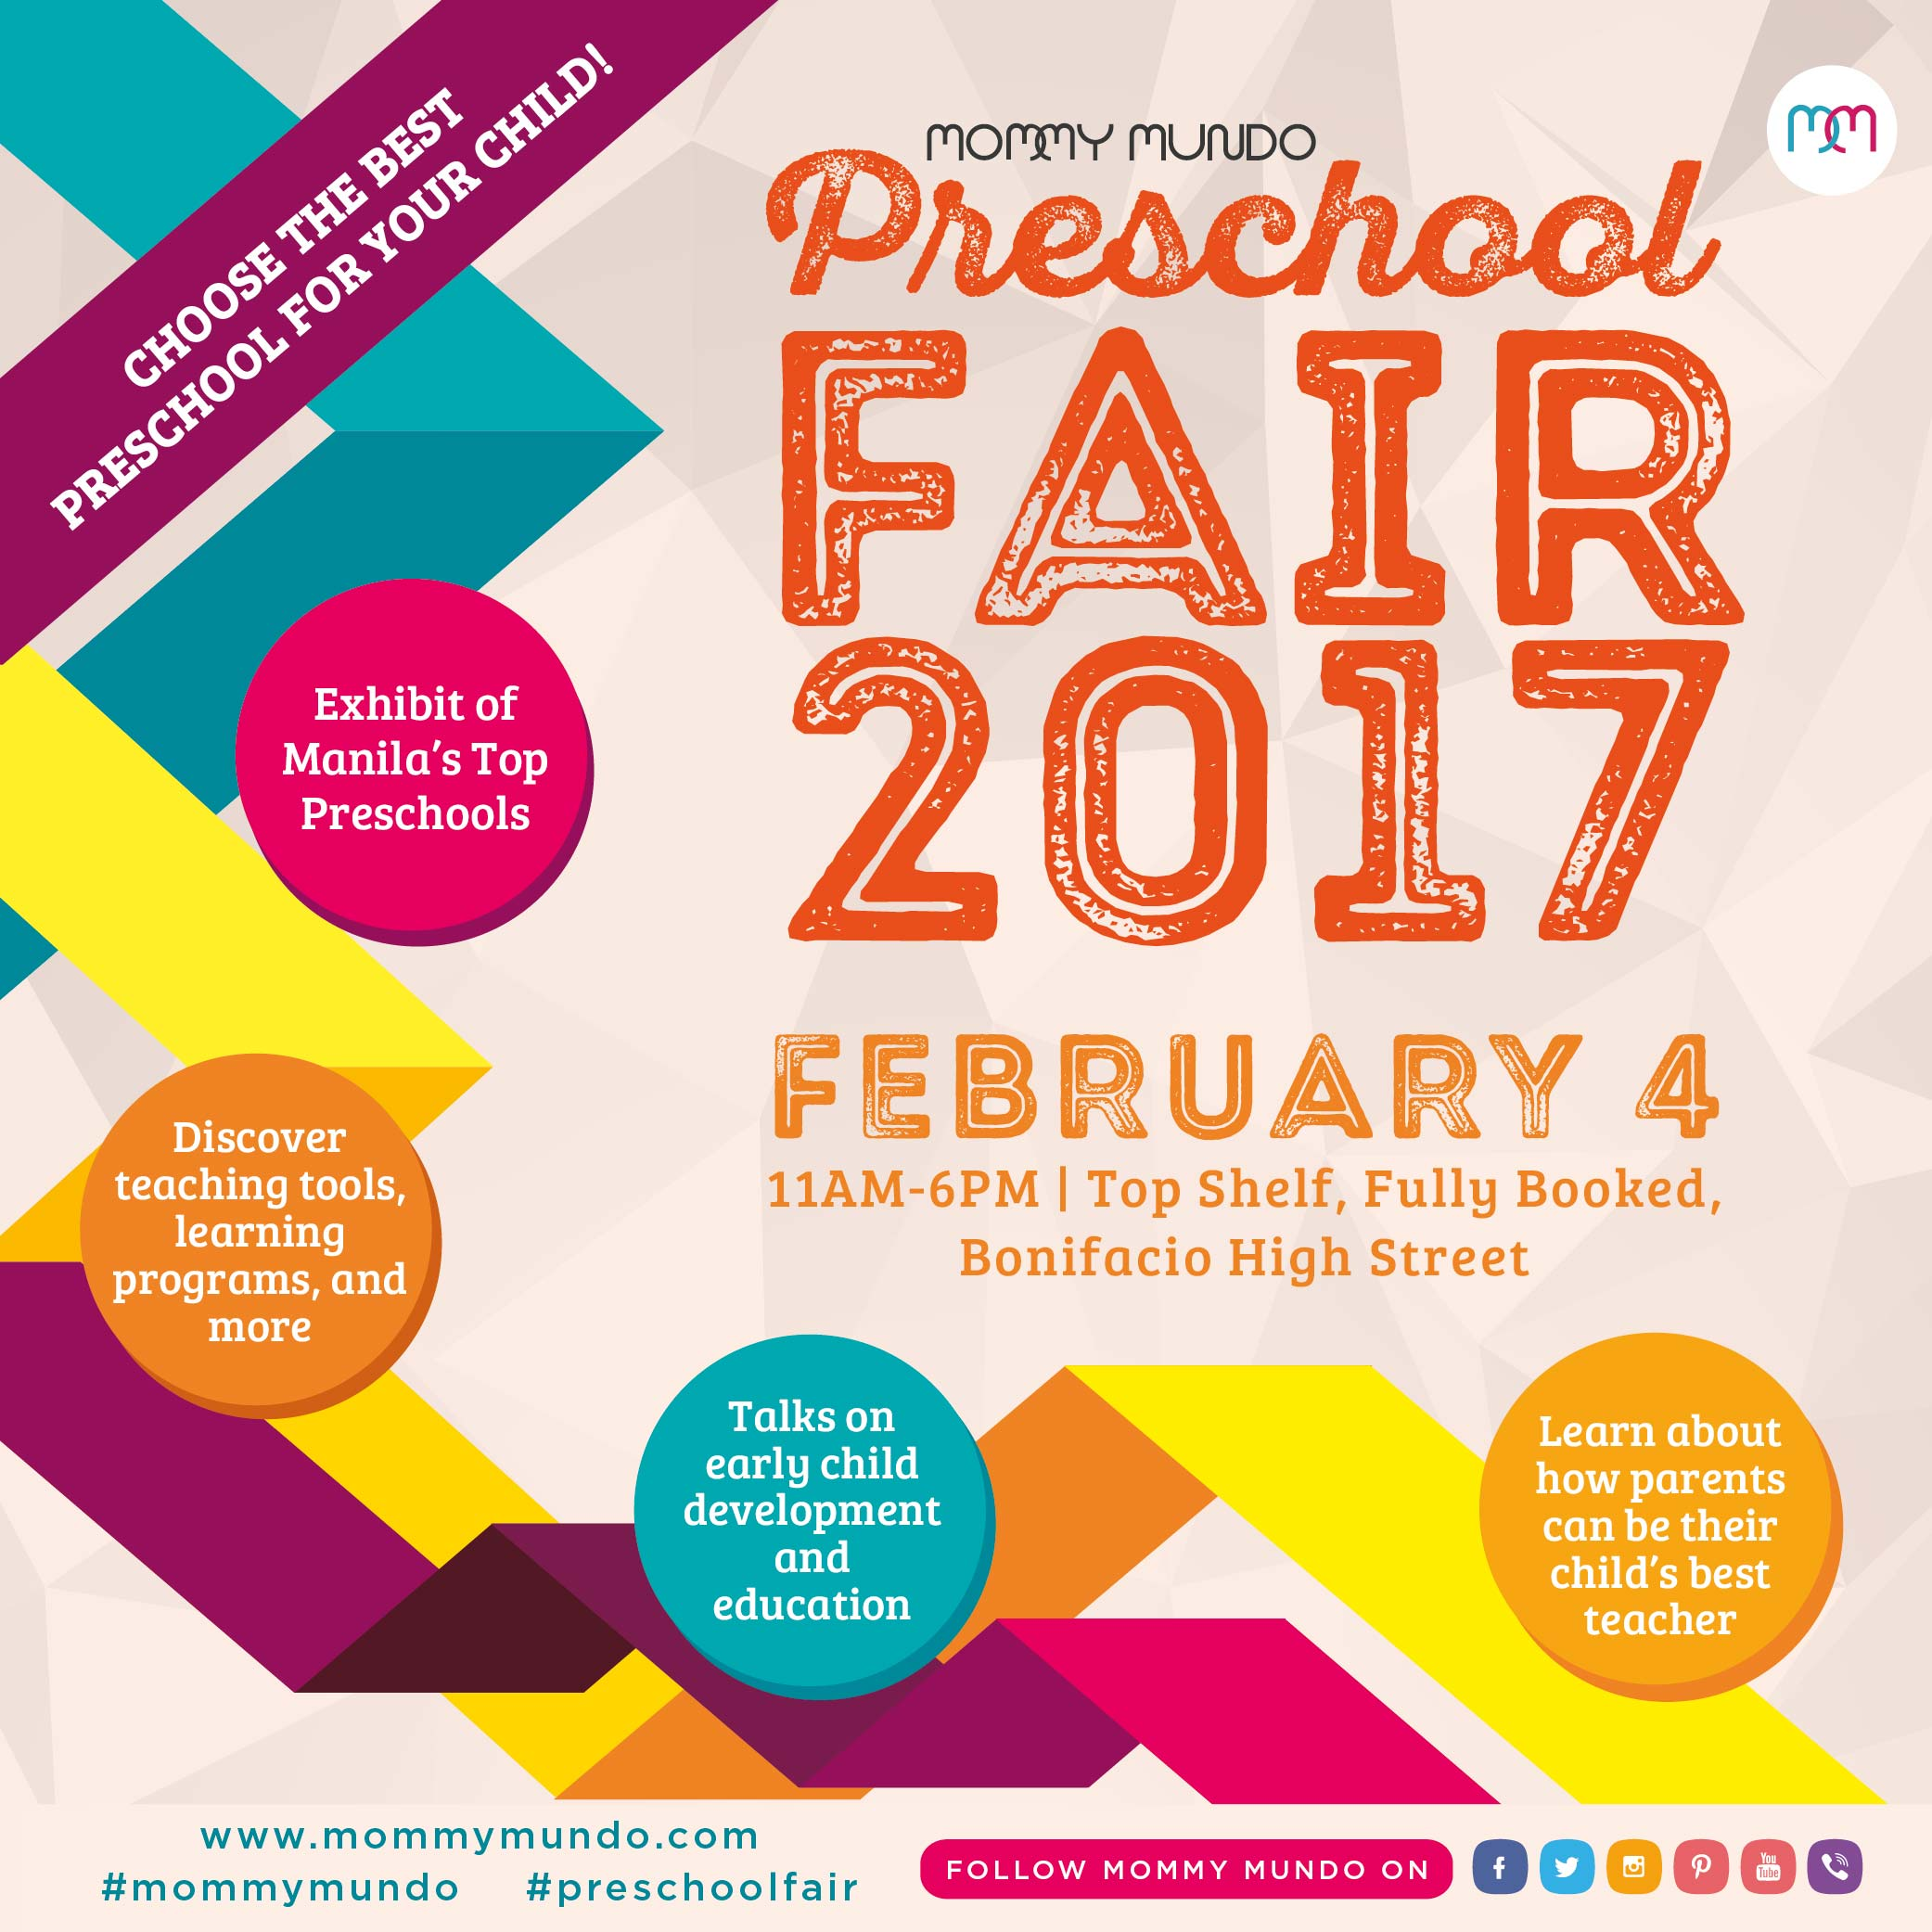 preschool-fair-2017-ig-01